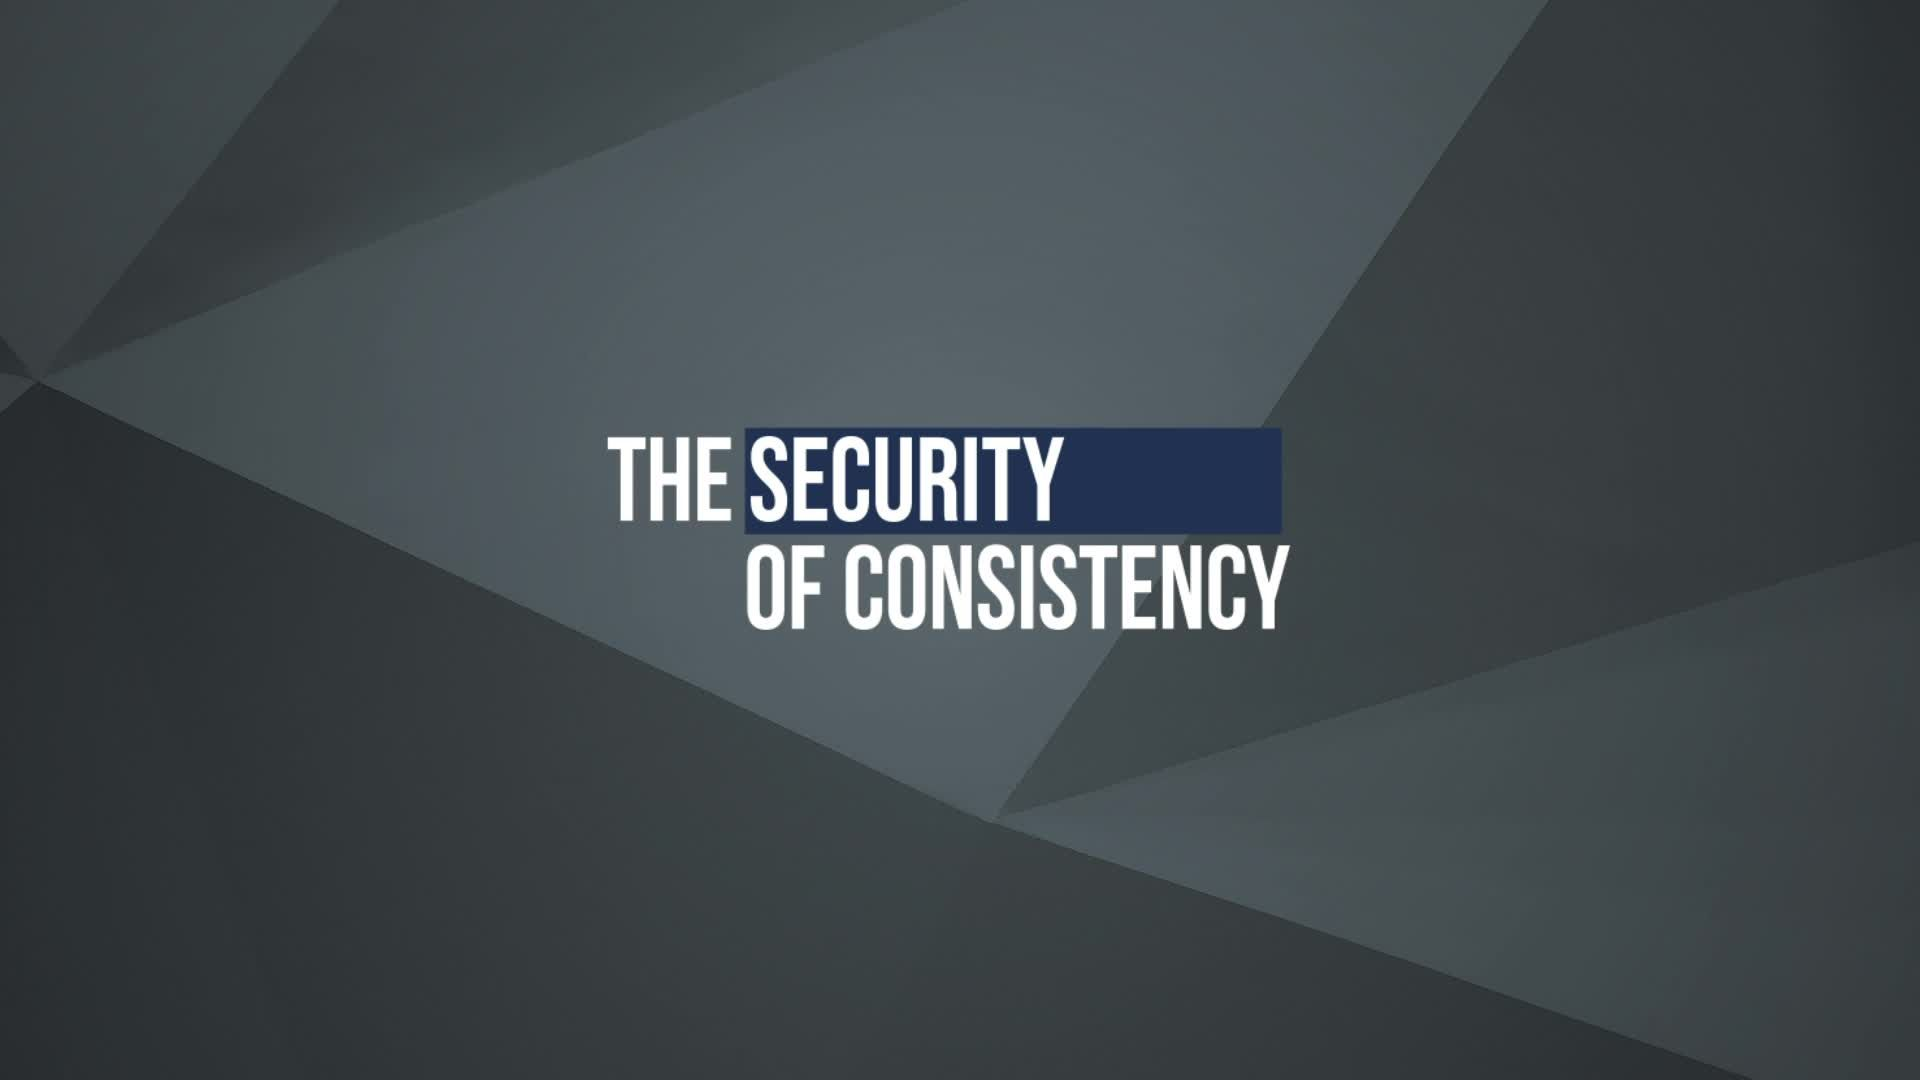 The Security of Consistency